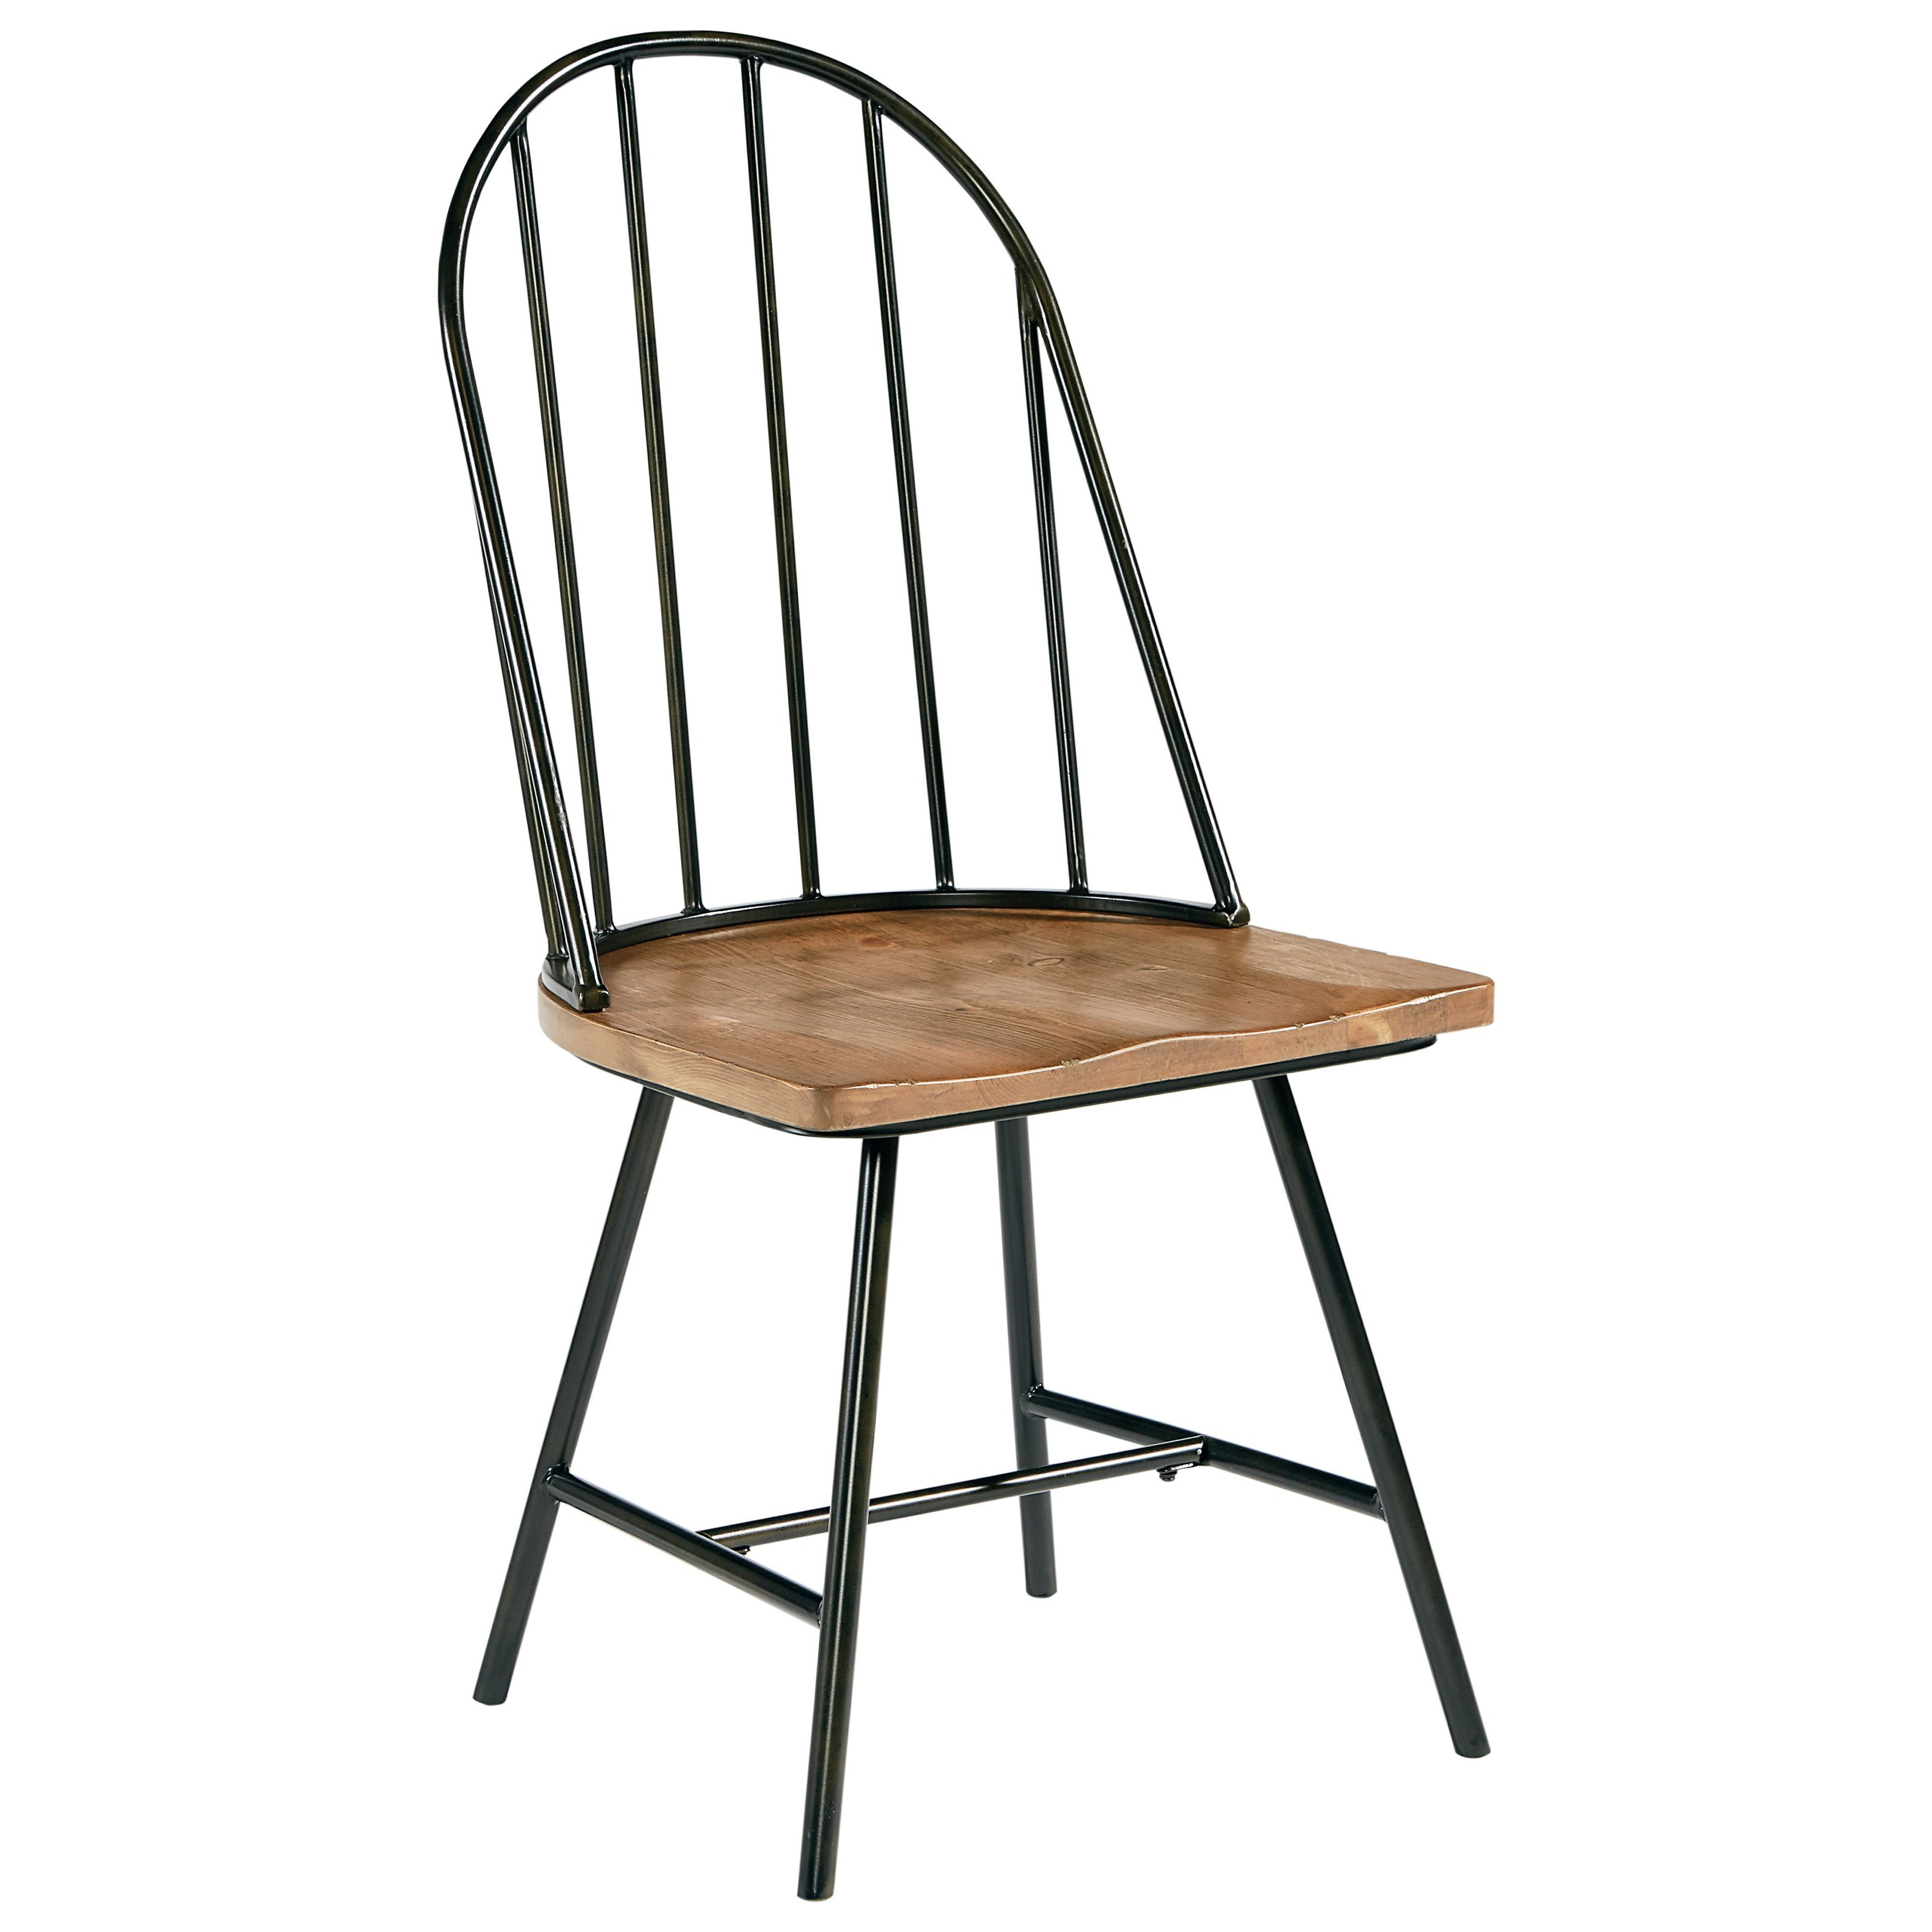 Attirant Magnolia Home By Joanna Gaines PrimitiveMetal Hoop Chair ...